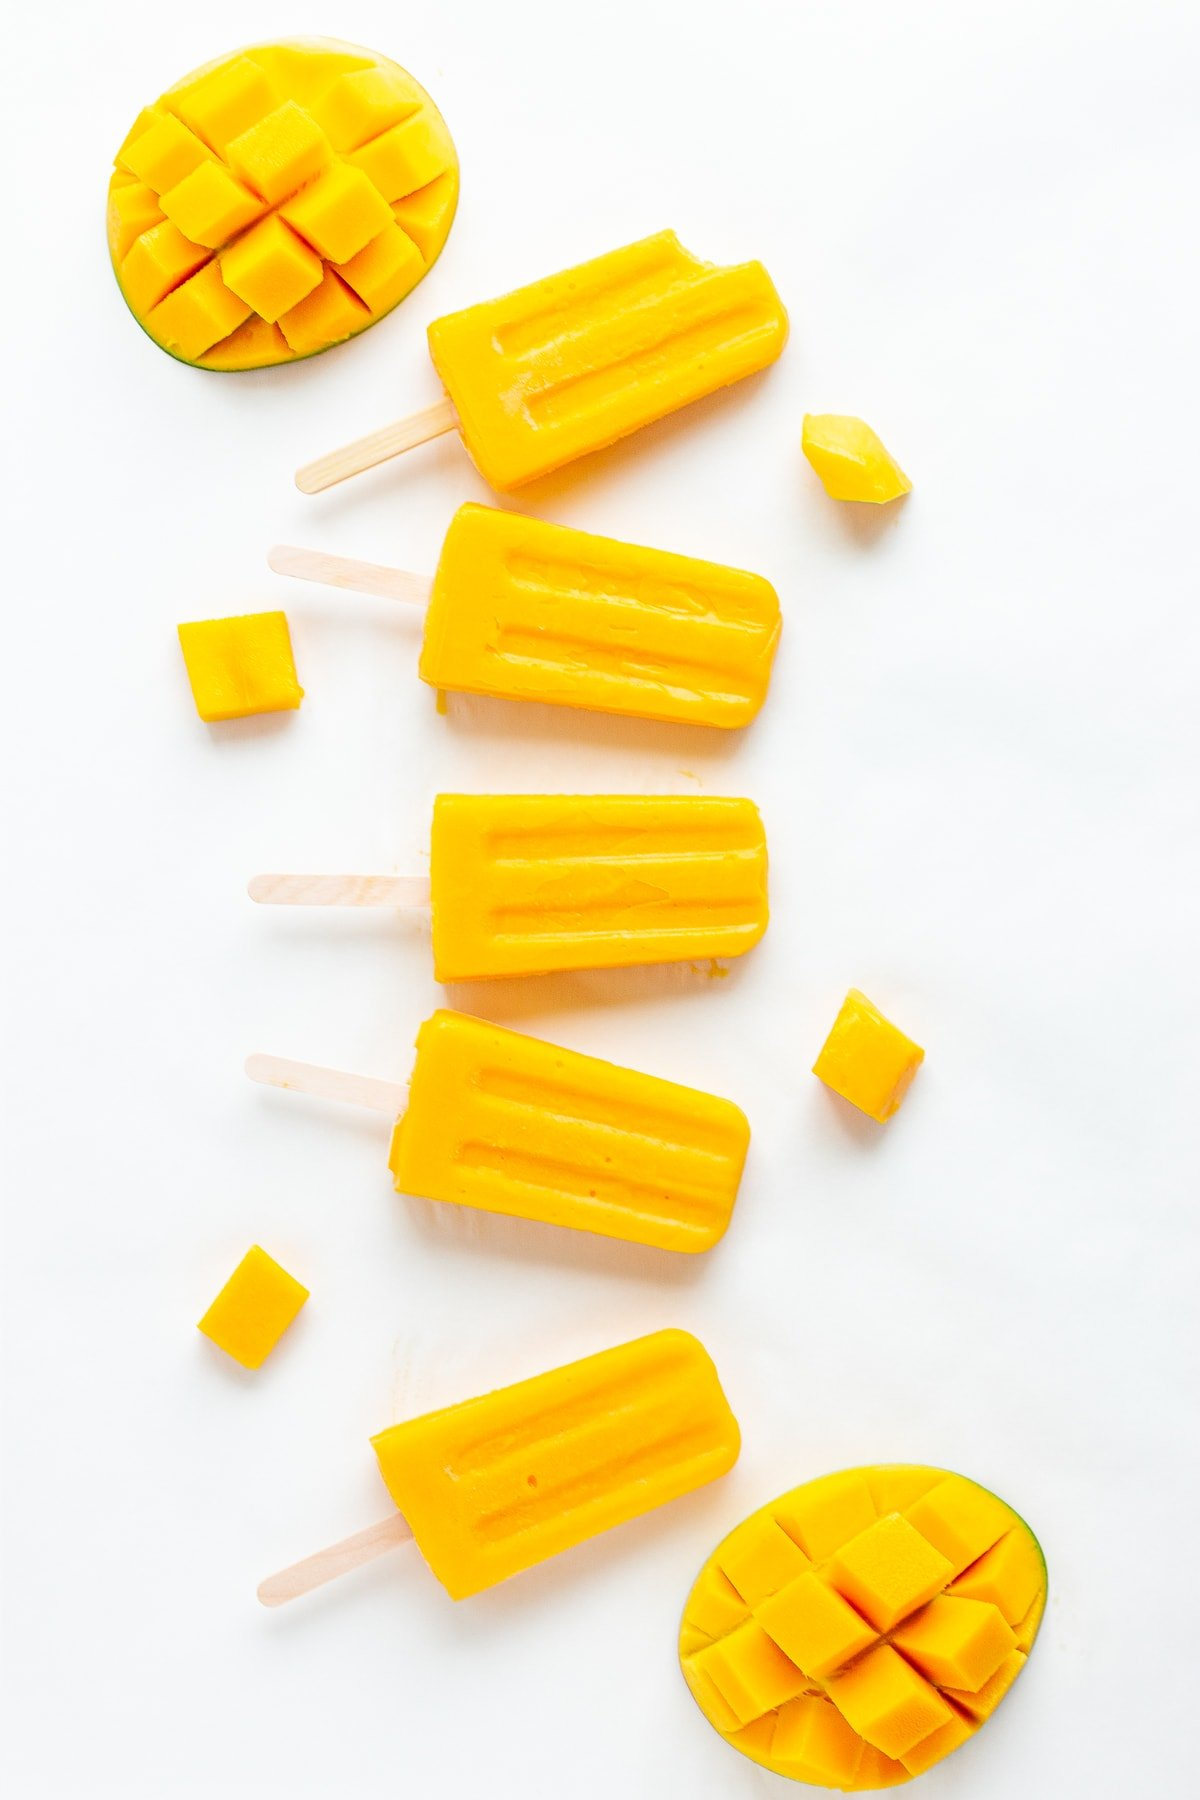 Mango popsicles and fresh mango displayed on a white background.